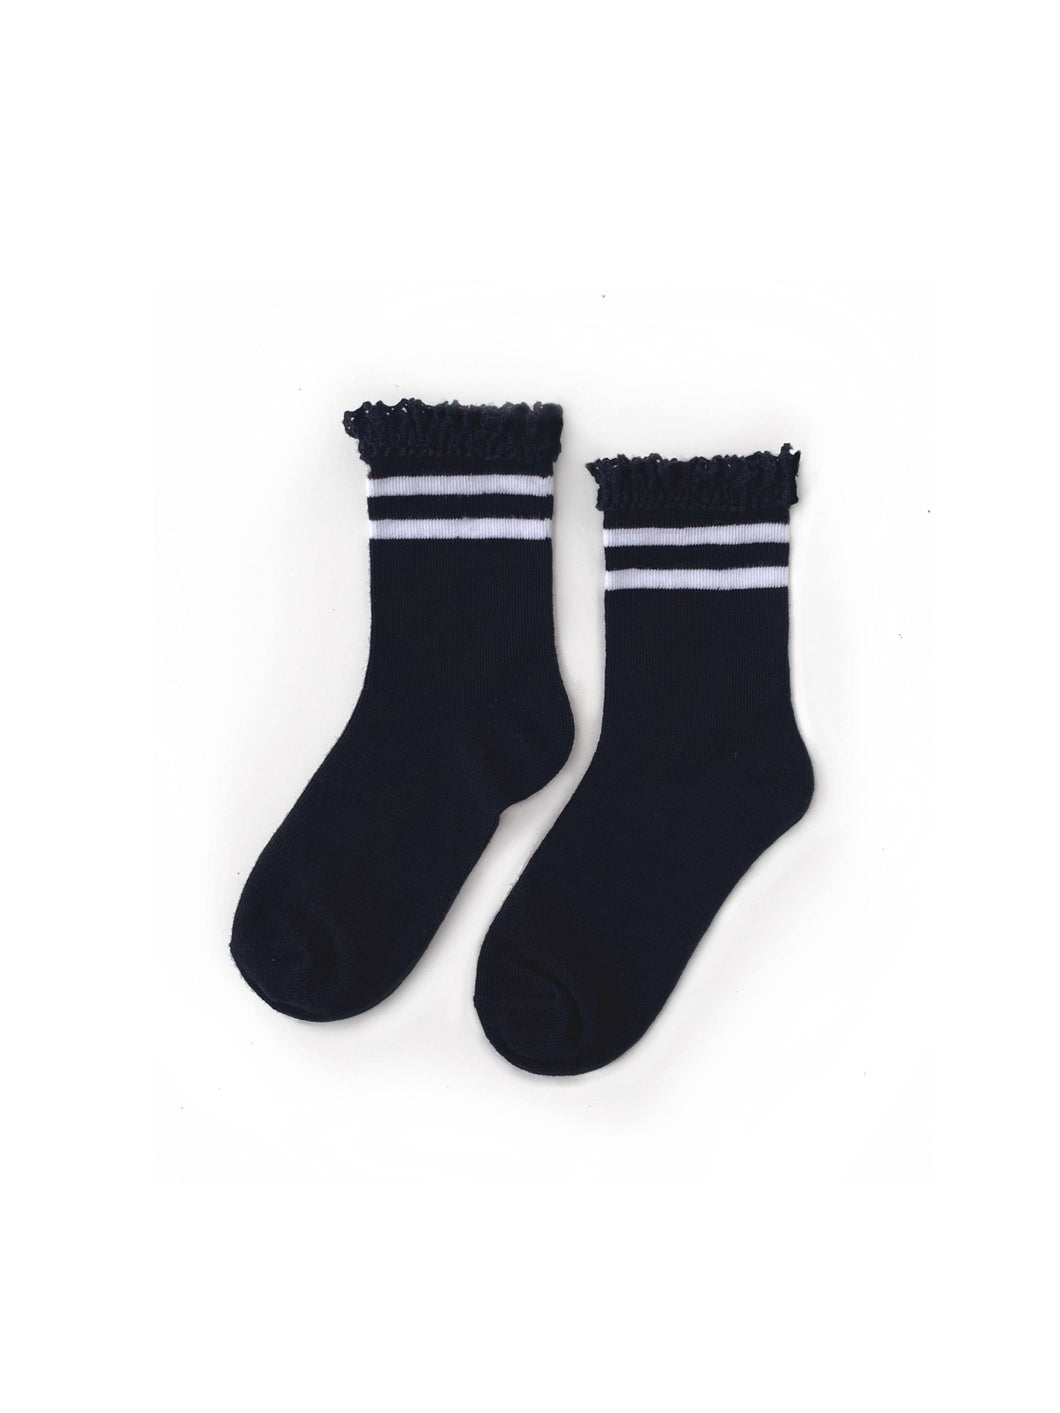 Black with White Stripes Lace Midi Socks